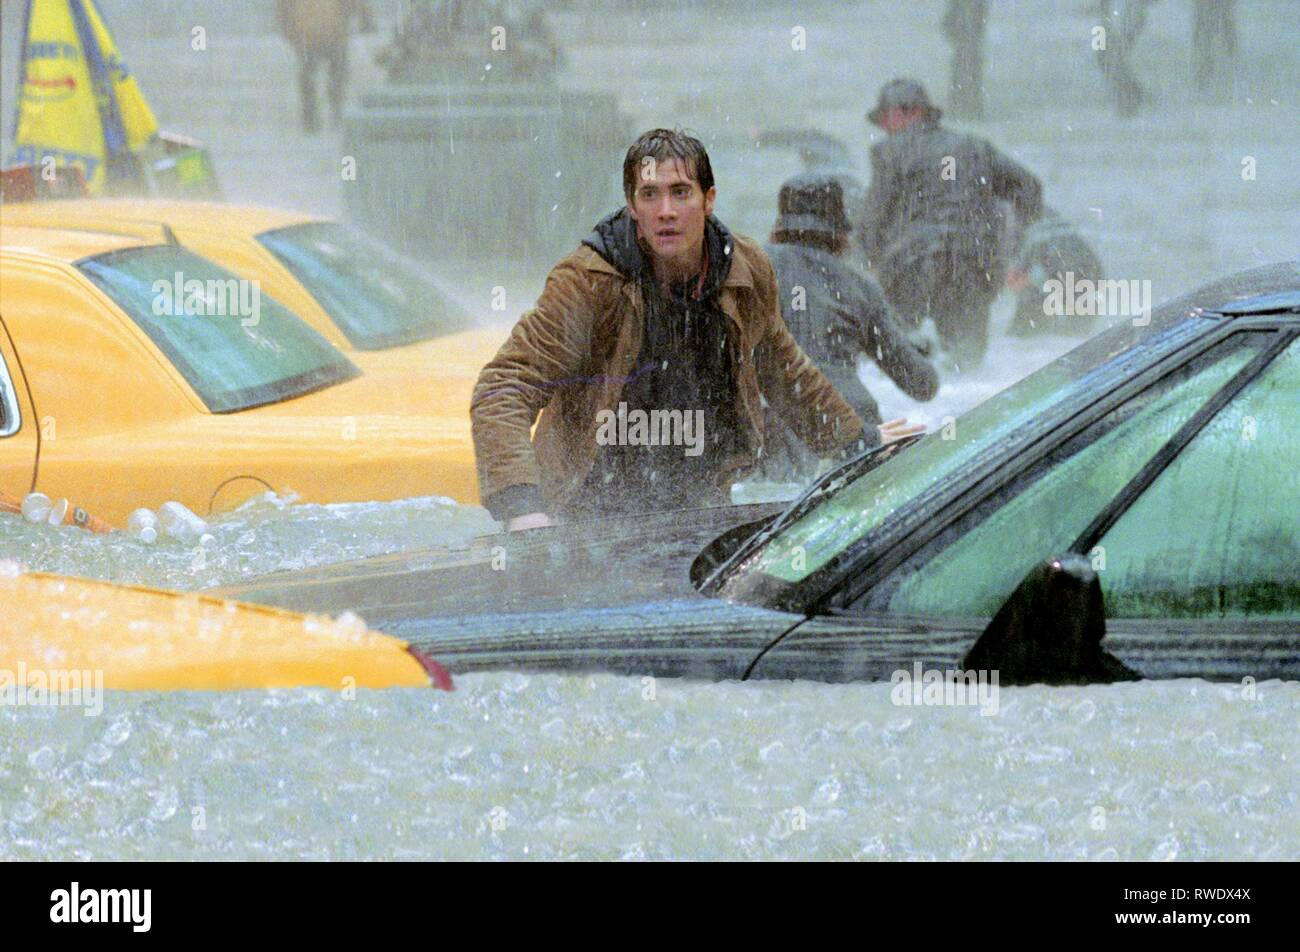 JAKE GYLLENHAAL, THE DAY AFTER TOMORROW, 2004 - Stock Image